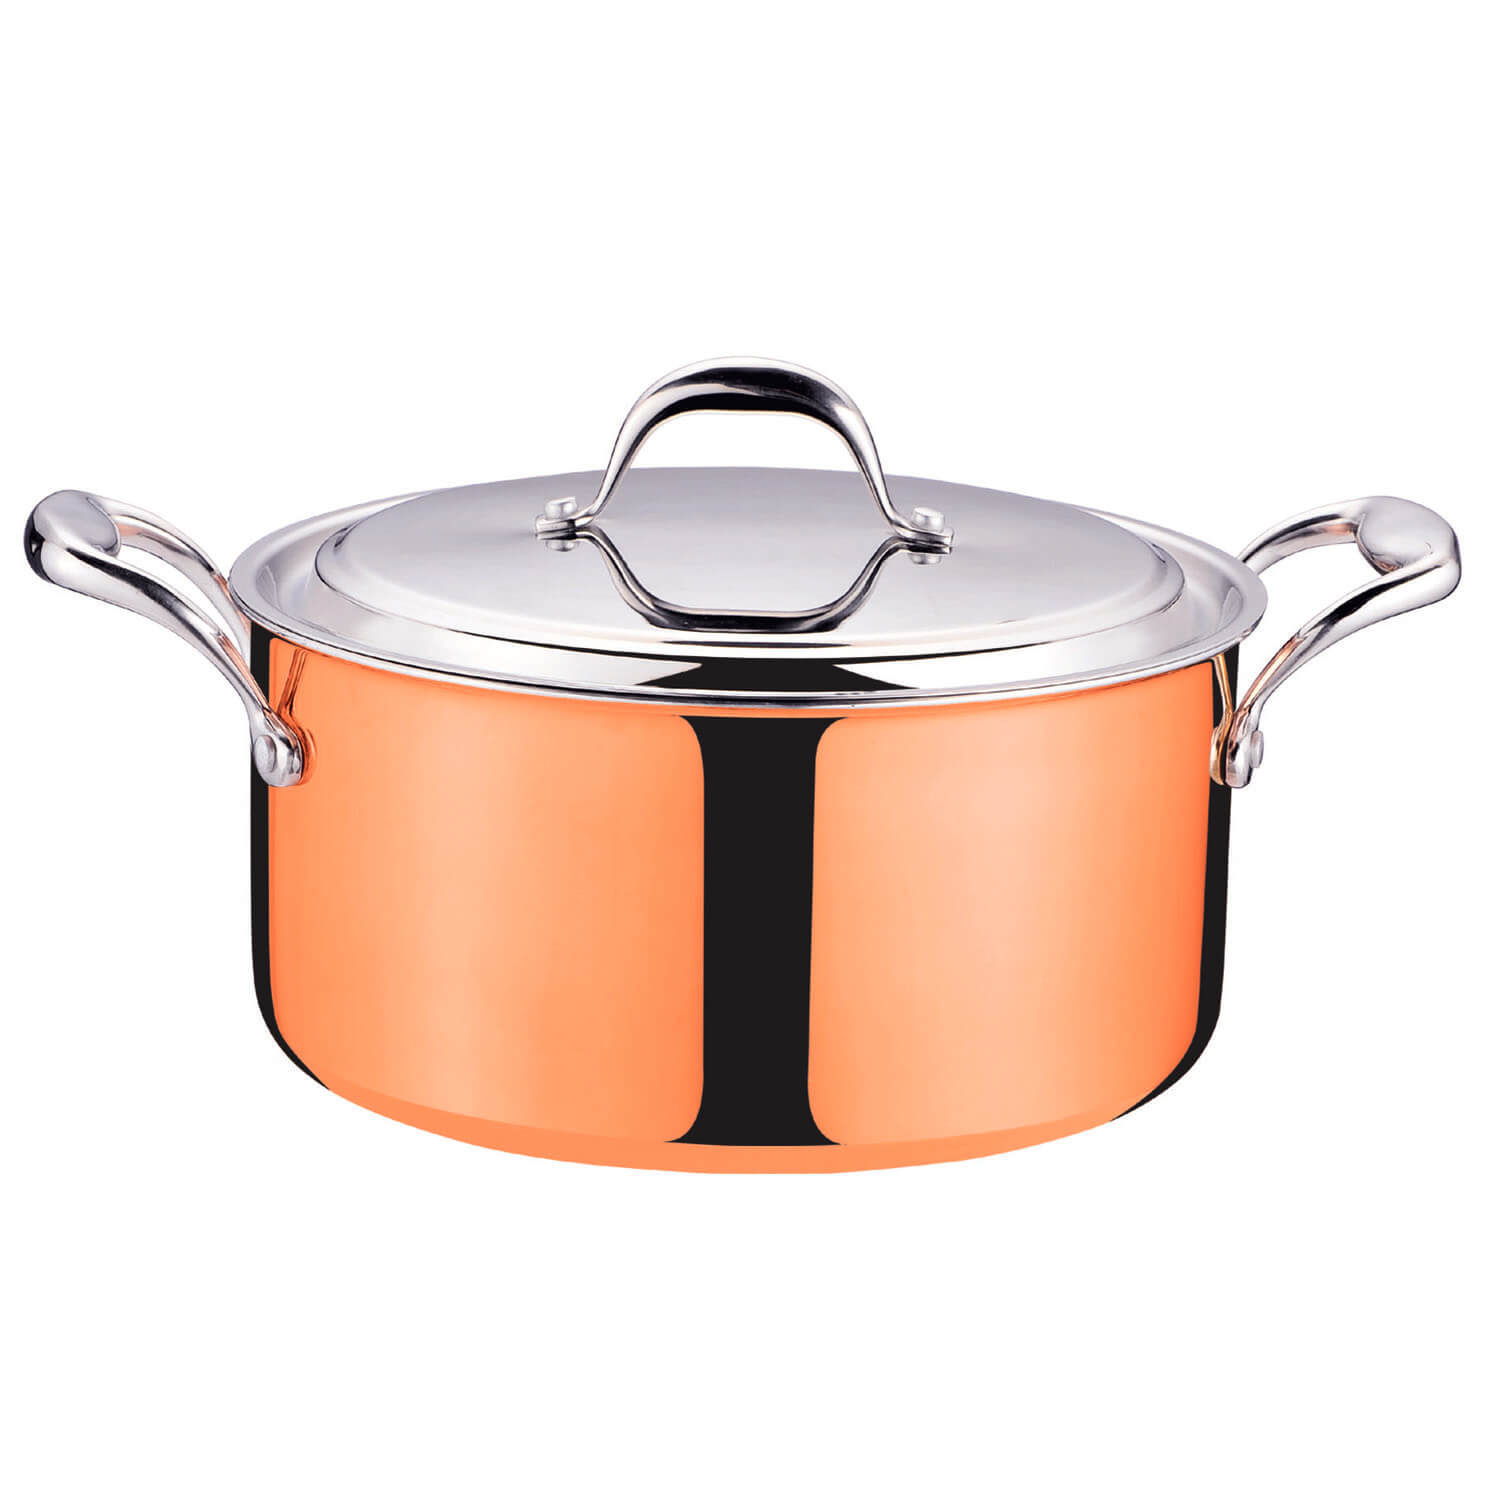 9pcs Home Cooking Tri Ply Clad Copper Cookware Set For All